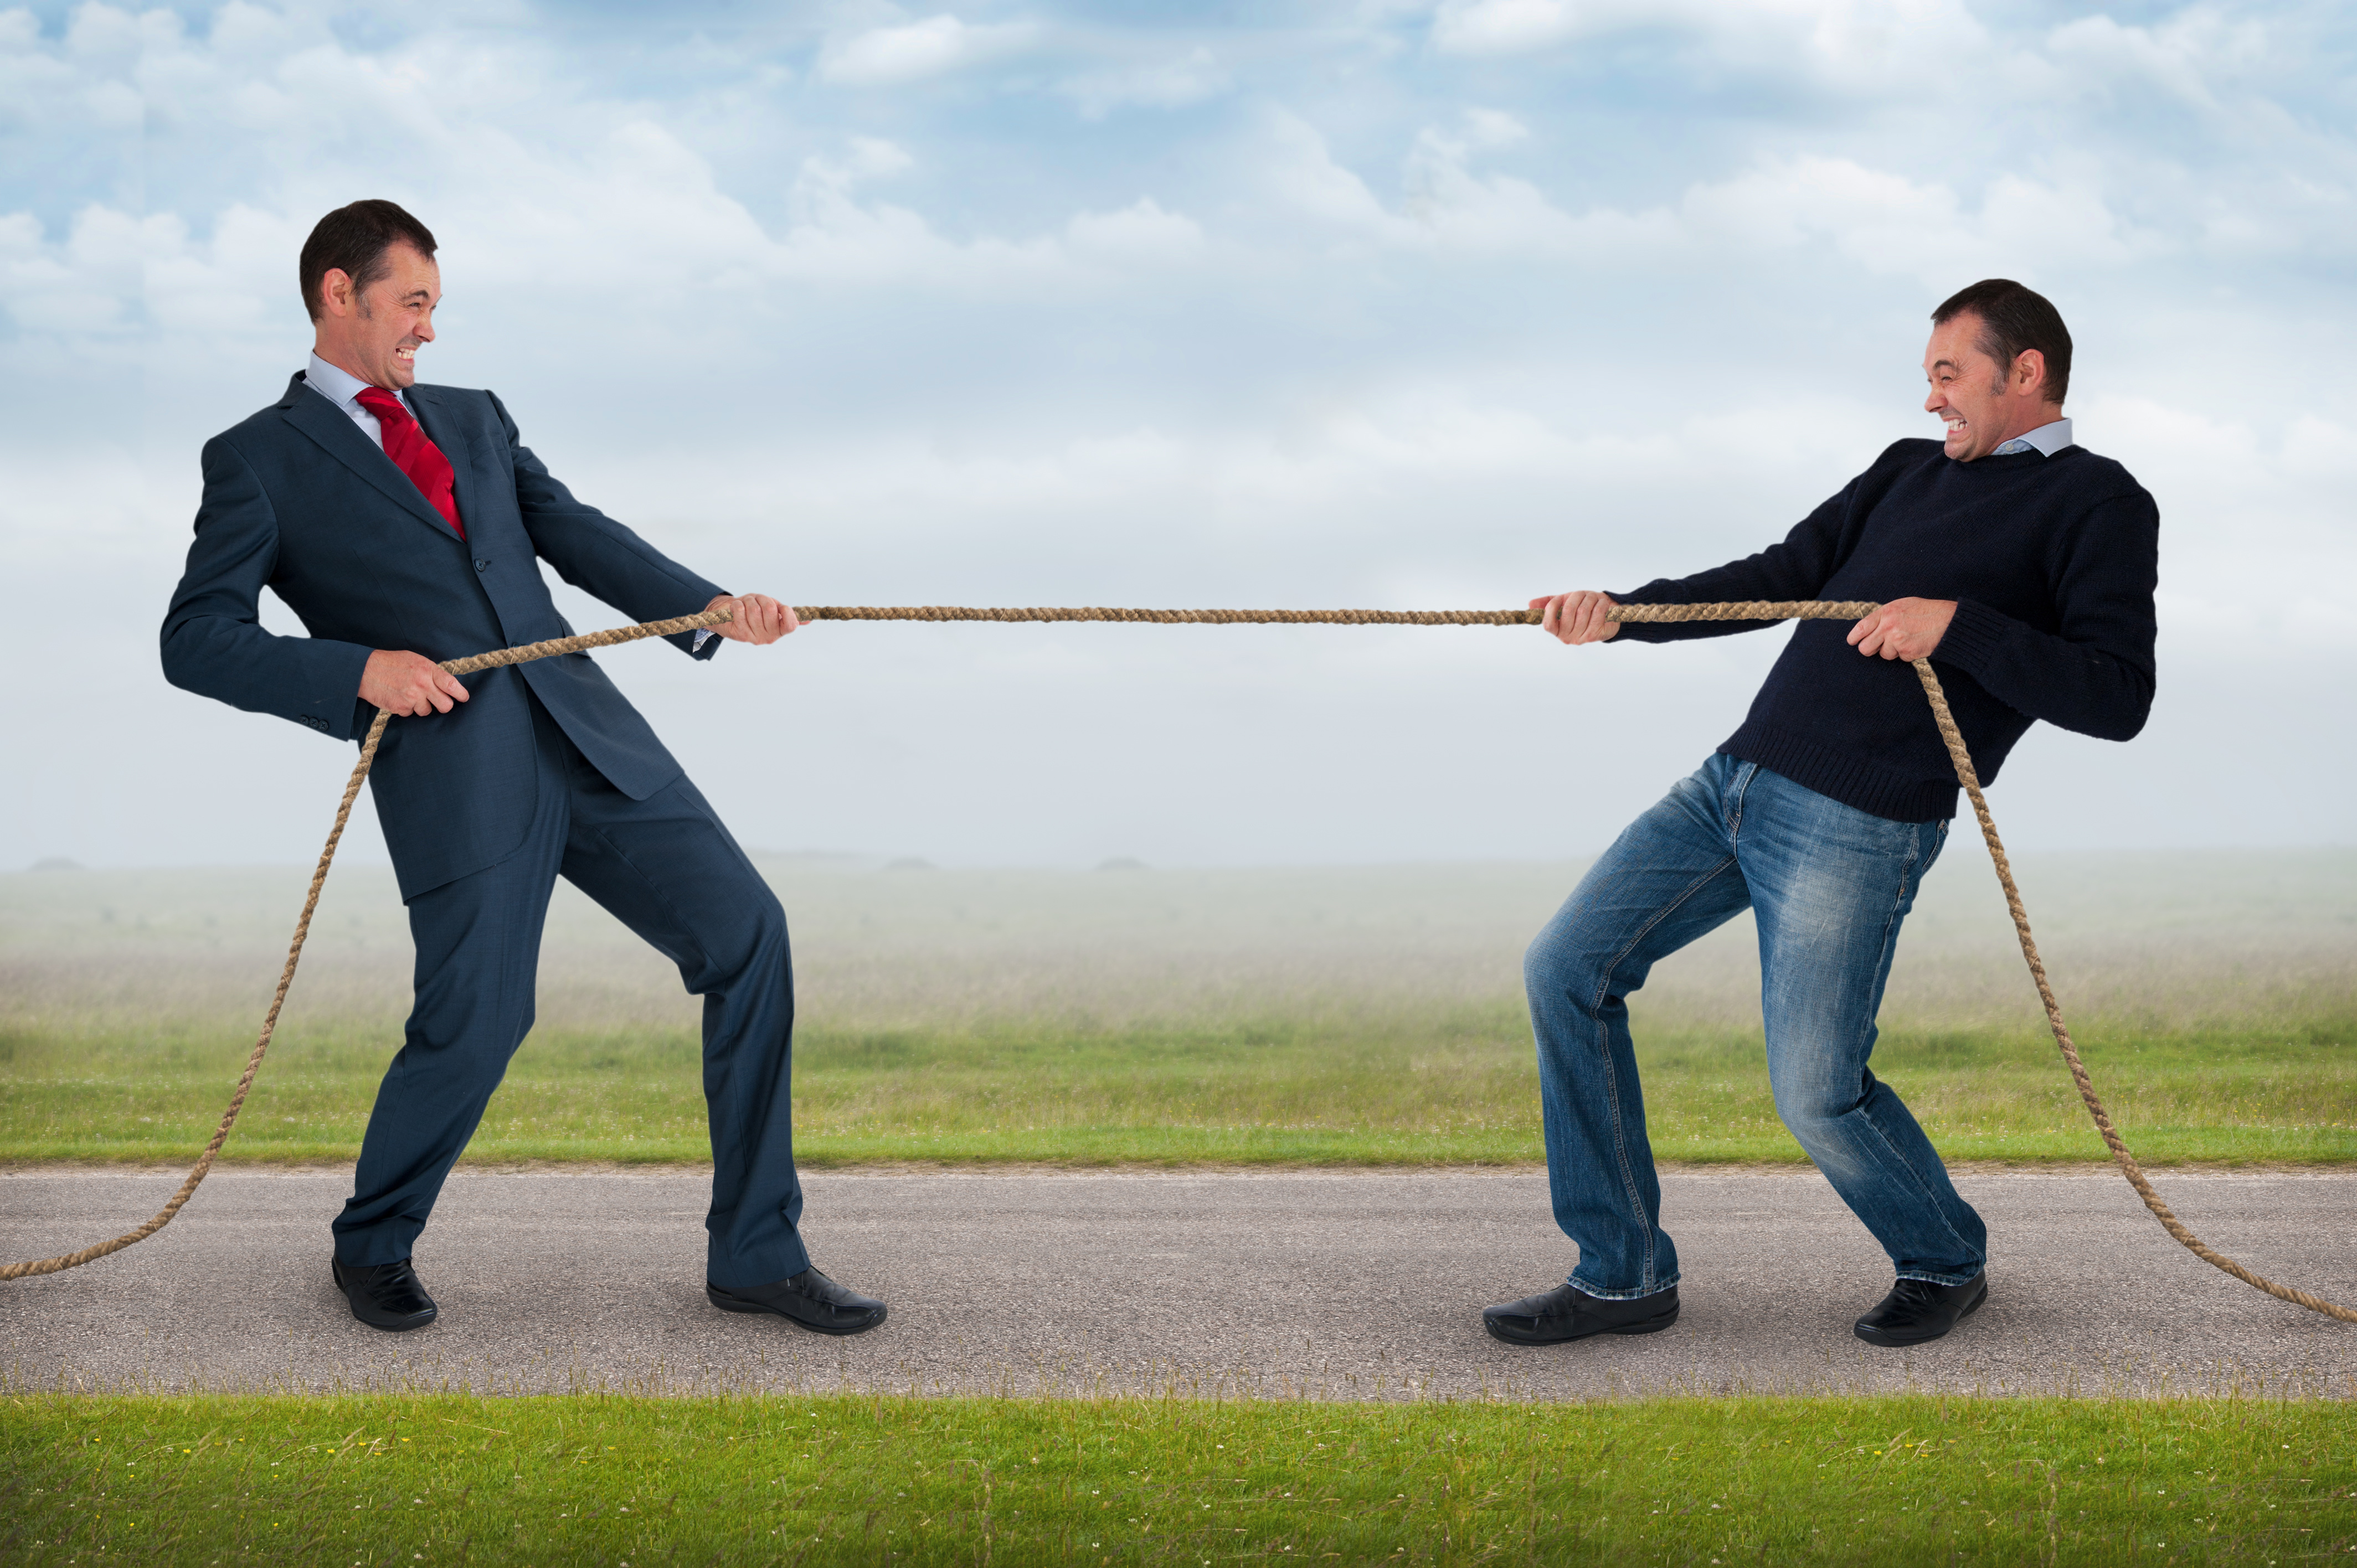 tug of war work life balance conflict concept